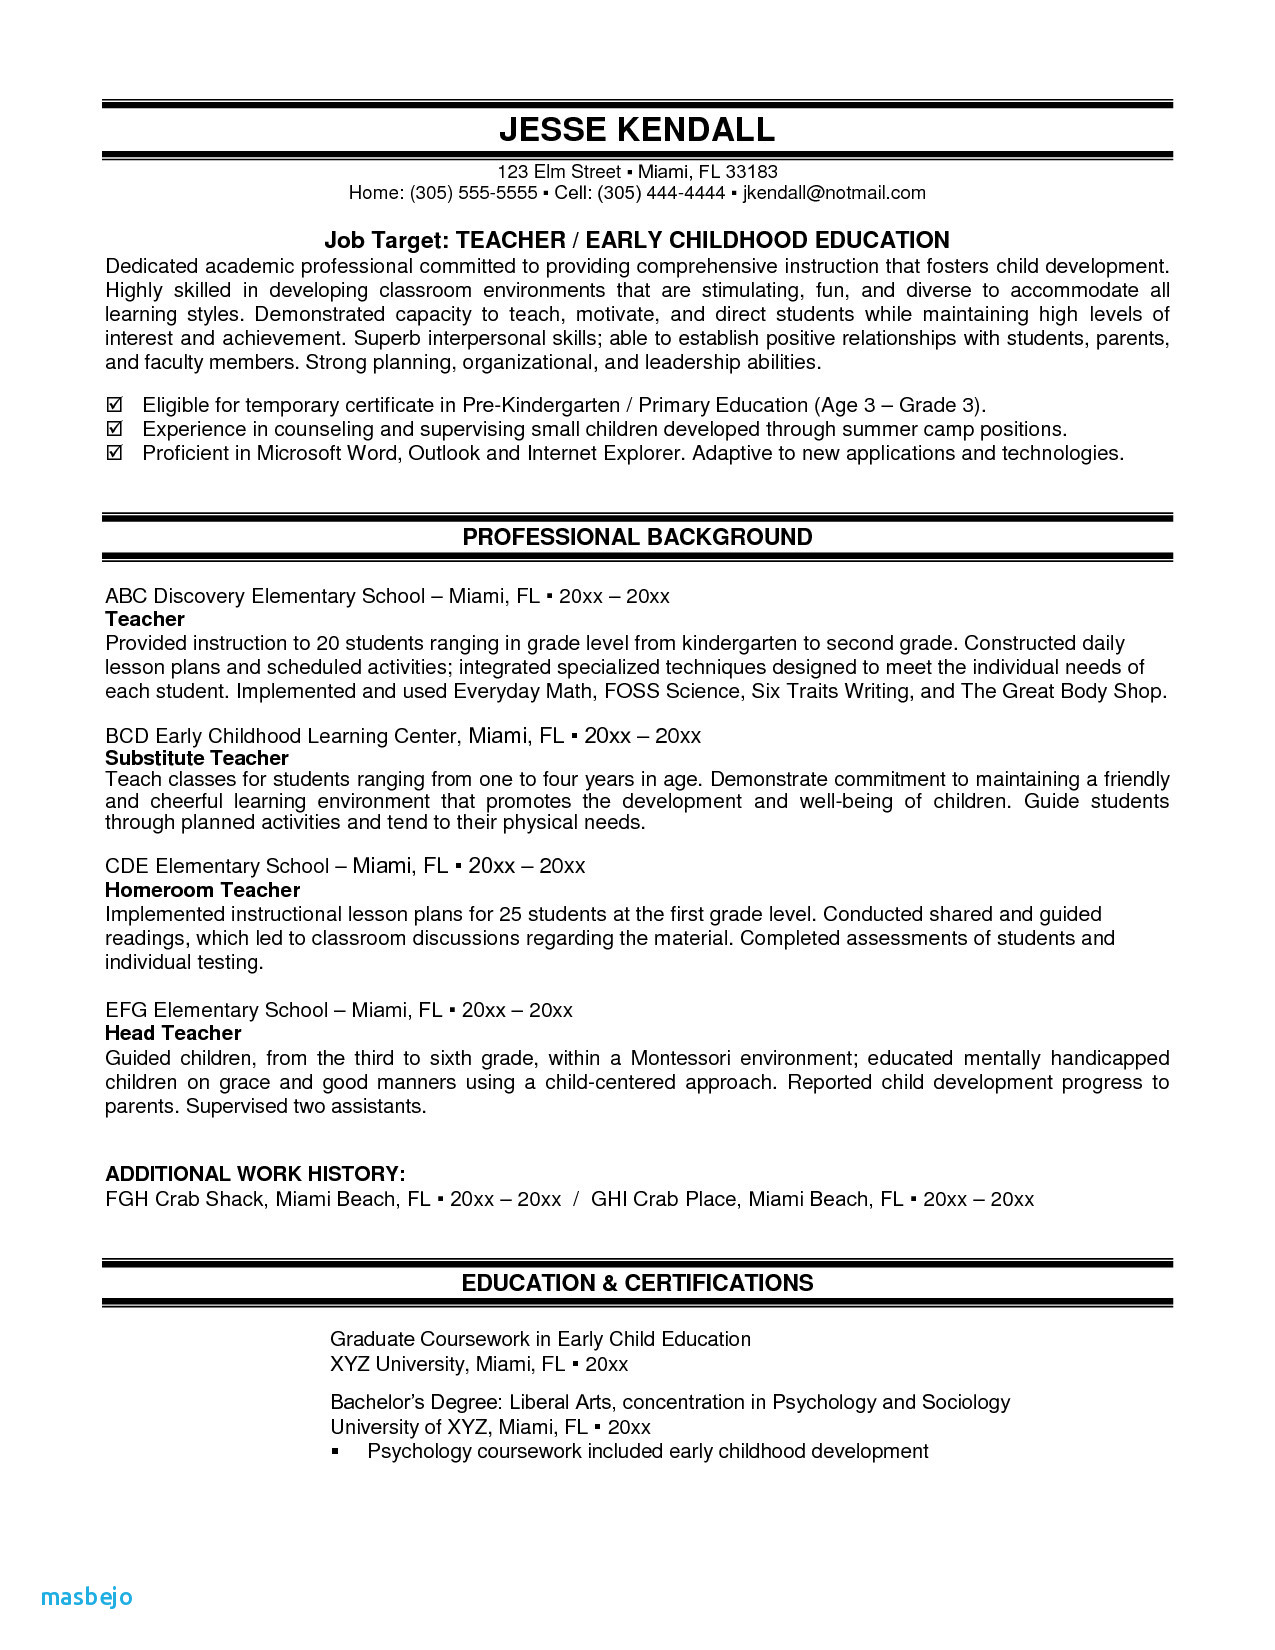 Resume Template for Teaching assistant - Resume Examples for Teacher assistant Elegant Resume for Highschool